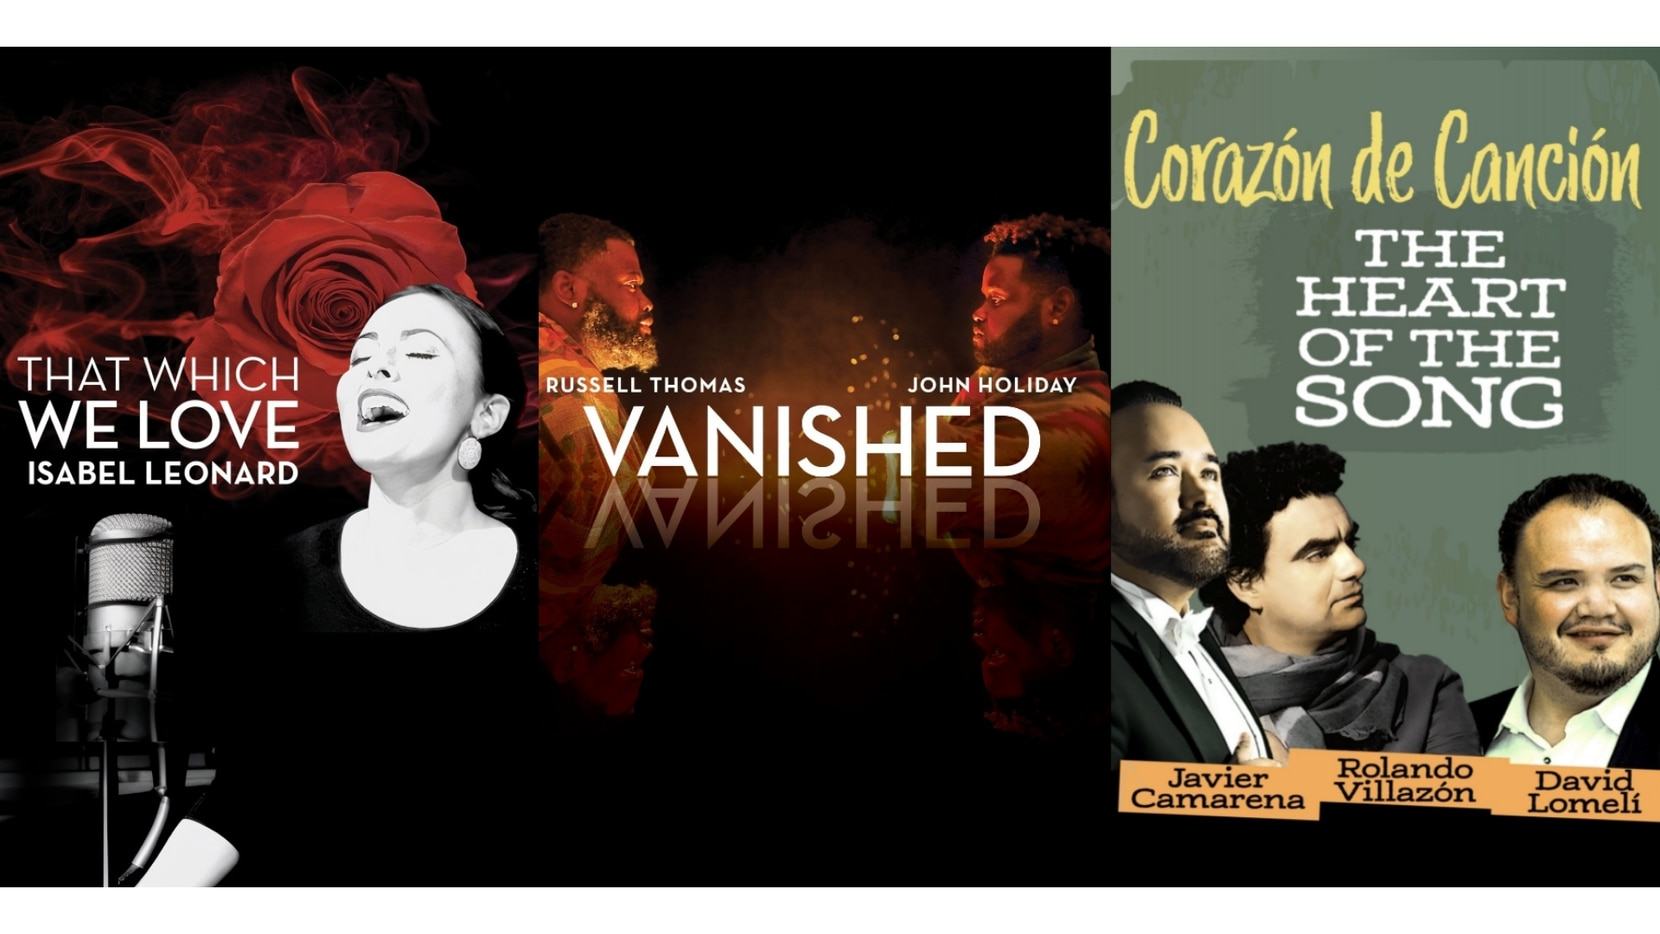 Three current Originals on thedallasopera.TV are available to all at a pay-per-view price, no subscription required.